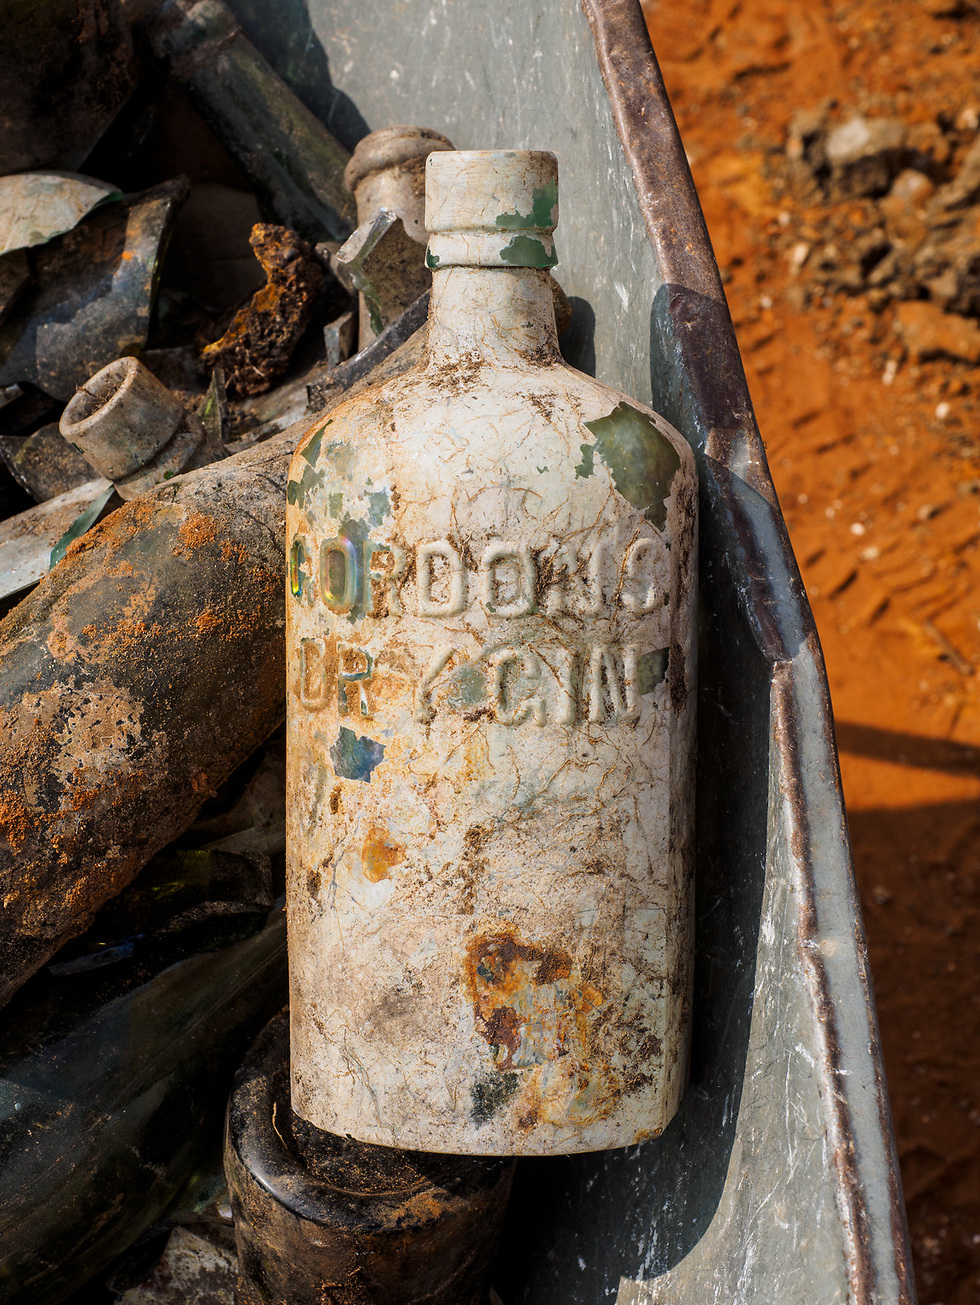 A bottle of Gordon's Dry Gin. (Photo: Assaf Peretz, courtesy of IAA)